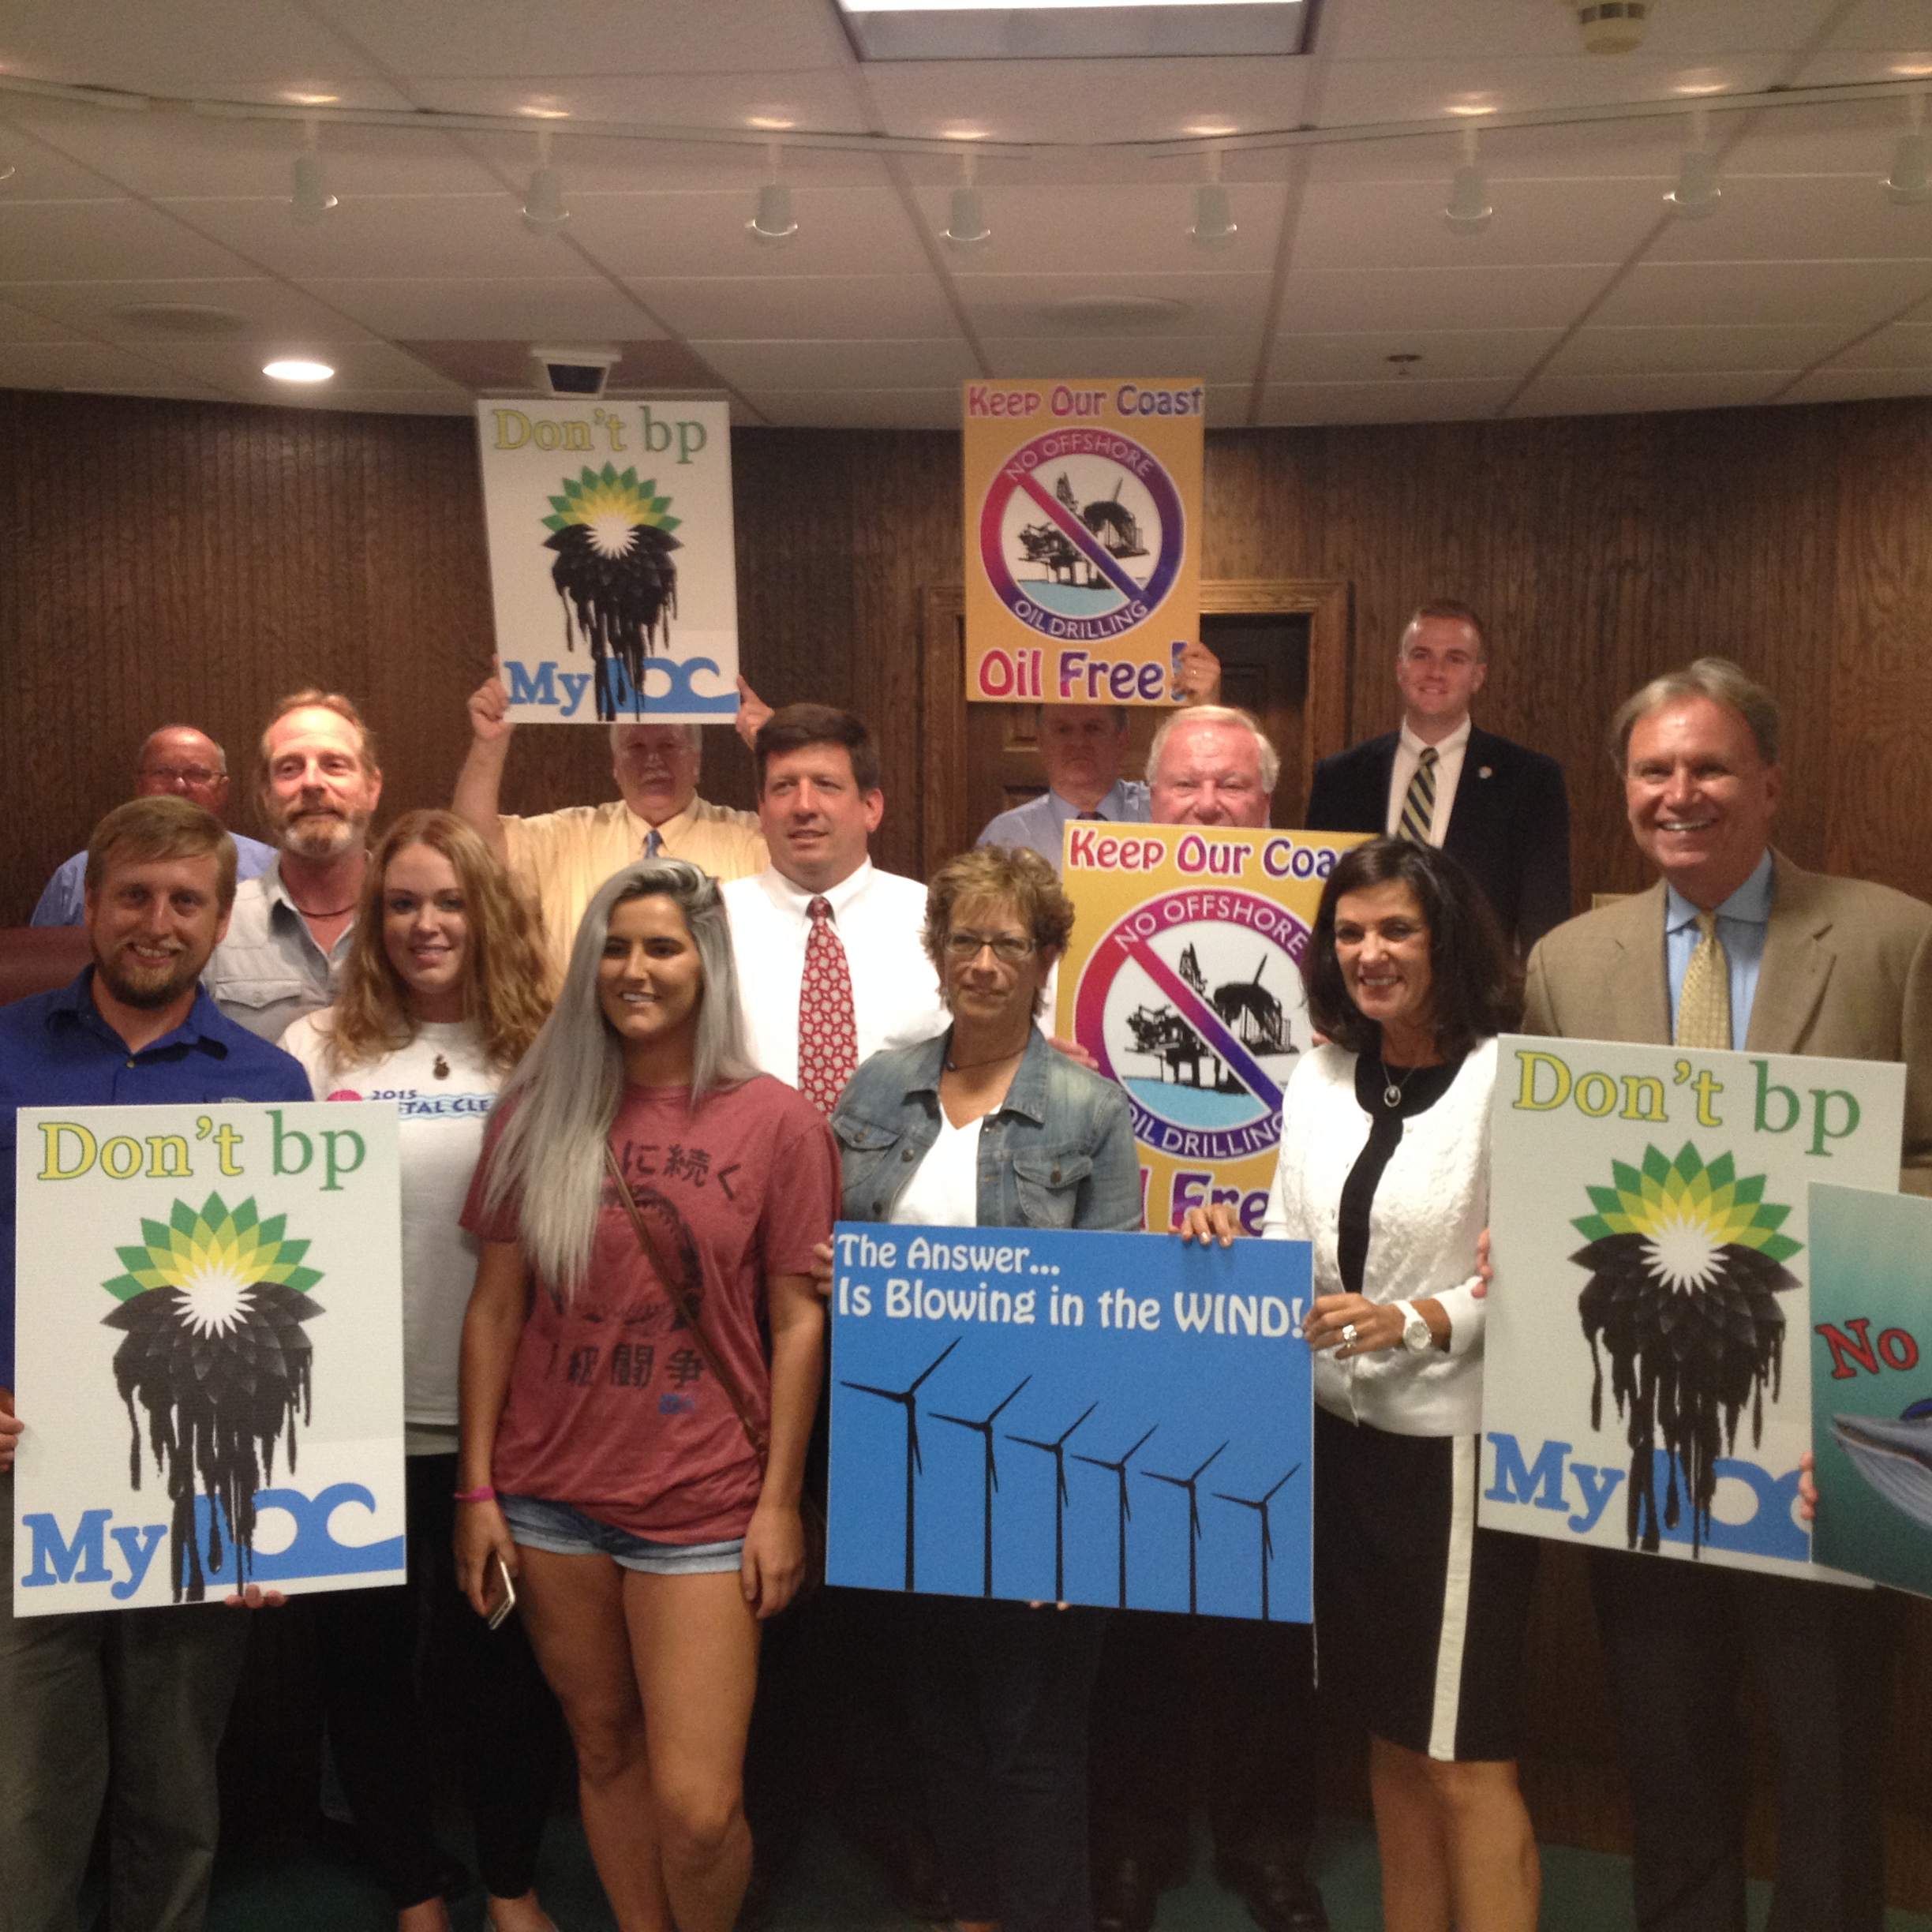 Ocean City Mayor and Council members are pictured with several representatives of environmental groups at City Hall Monday night. Photo by Shawn Soper